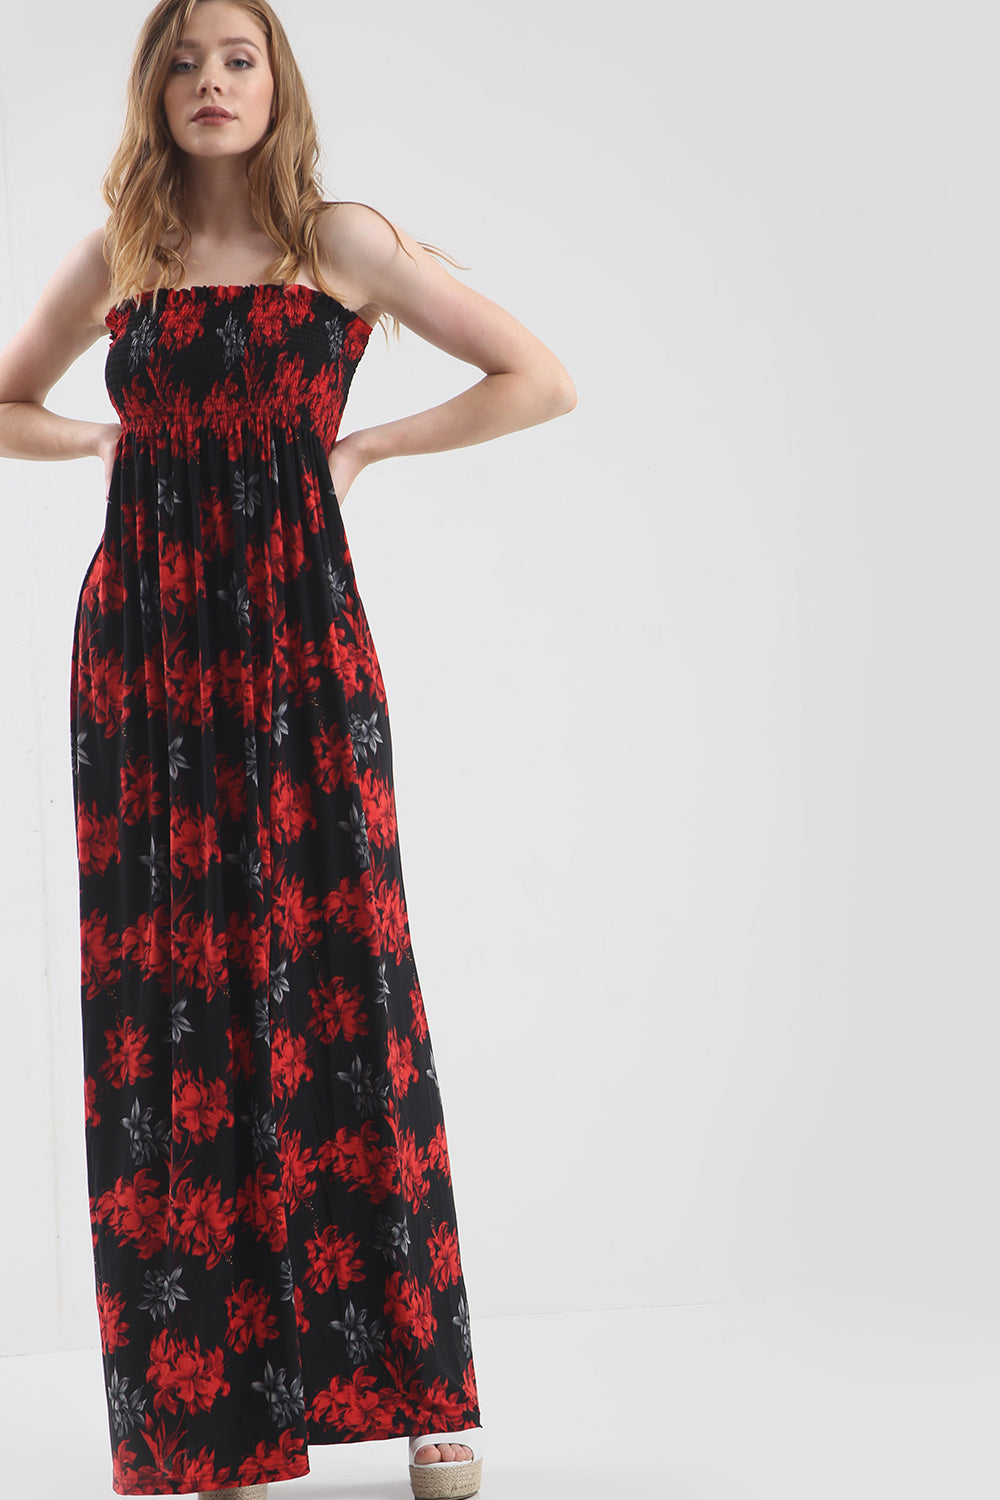 Strapless Maxi Dress in Red Tropical Print - bejealous-com